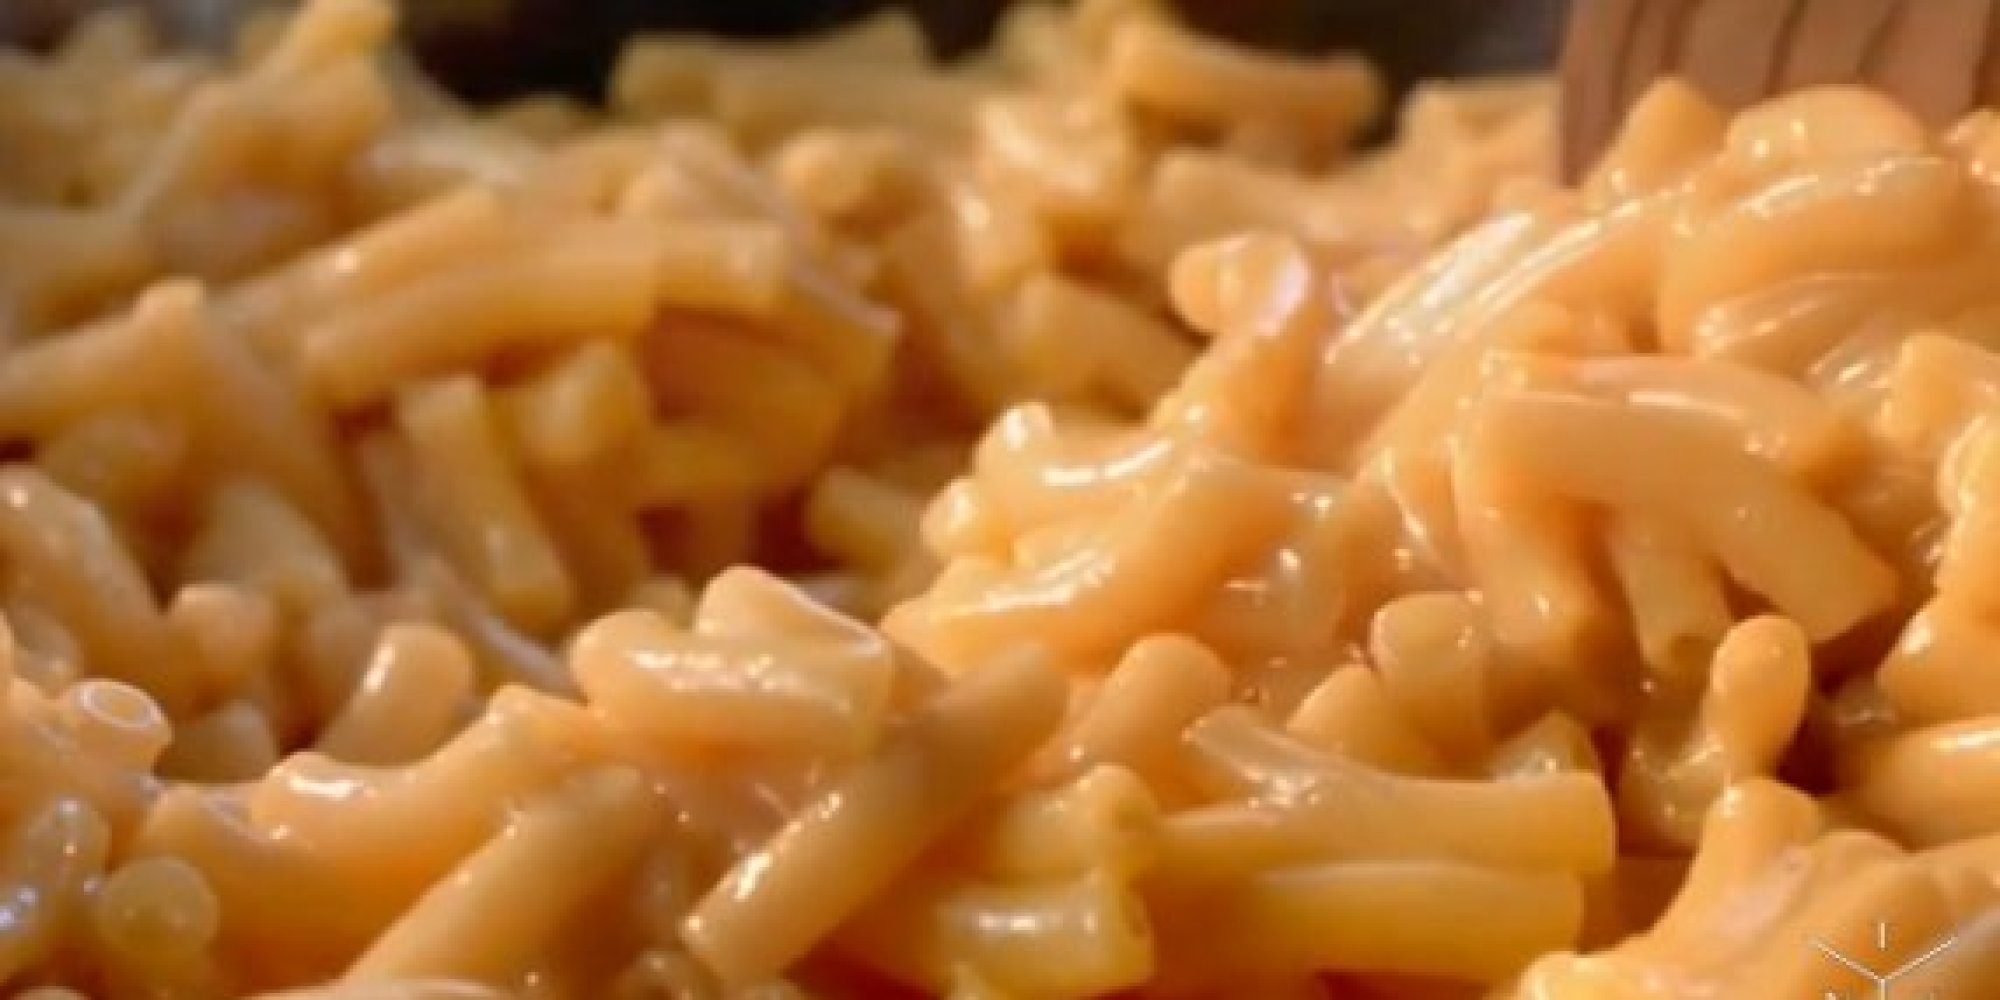 WATCH: What Exactly Is Cheese Powder, Anyway?